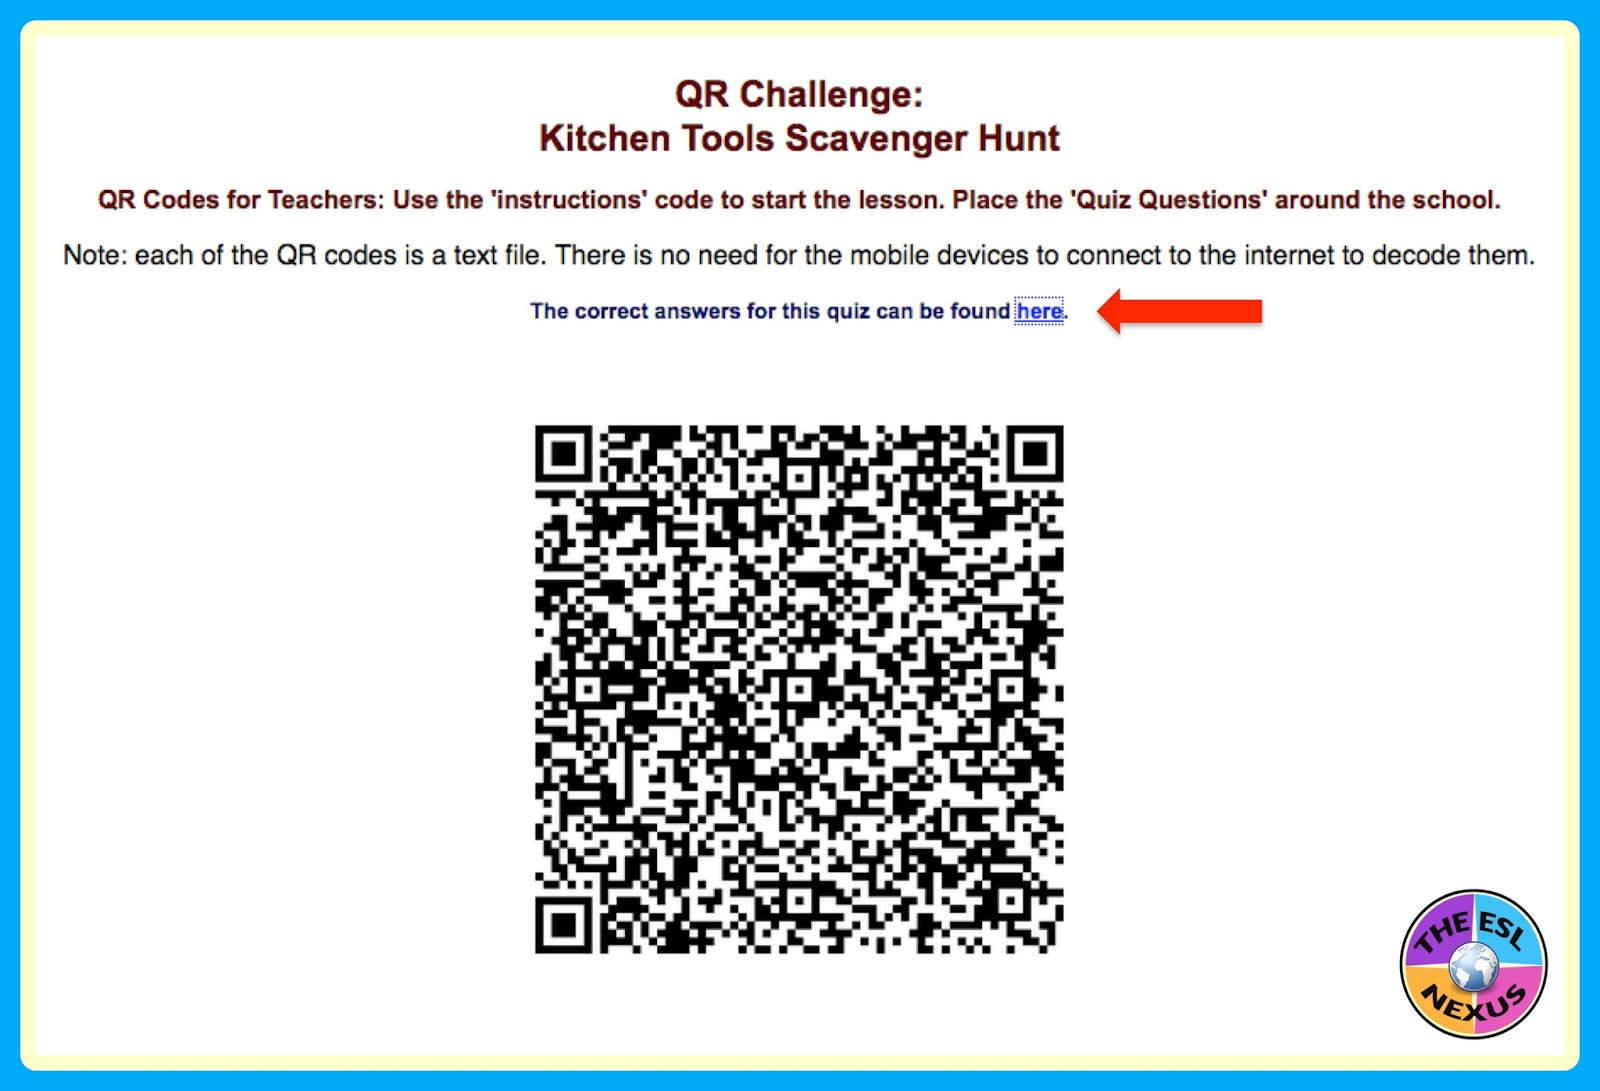 How to easily create a QR code scavenger hunt & lessons learned after implementing one for the first time | The ESL Connection